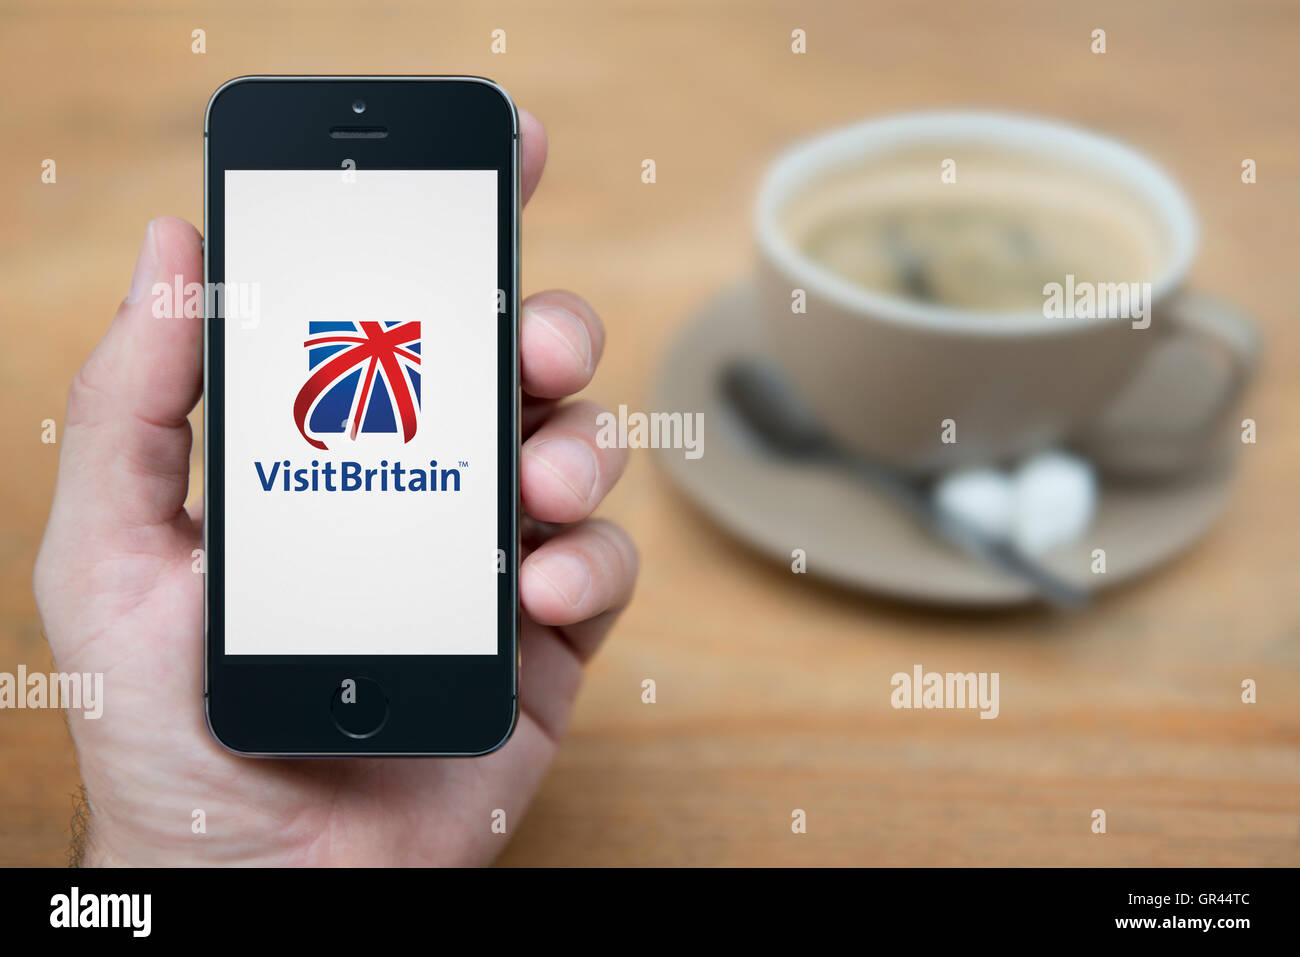 A man looks at his iPhone which displays the Visit Britain logo (Editorial use only). - Stock Image